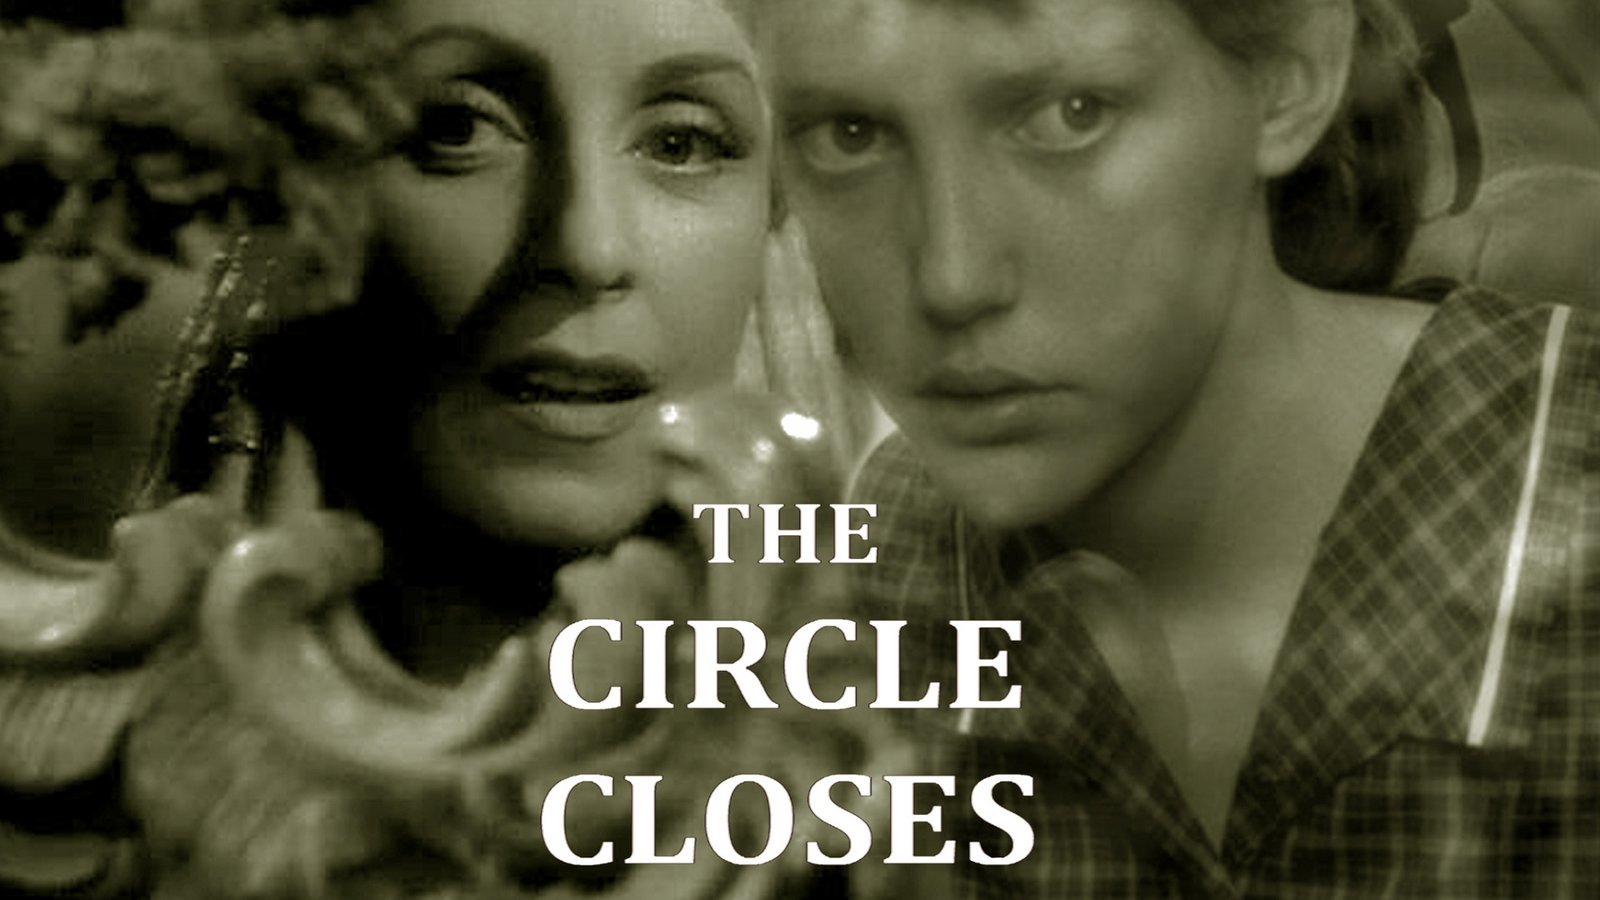 The Circle Closes - An Examination of the Use of Props in Four Classic Films